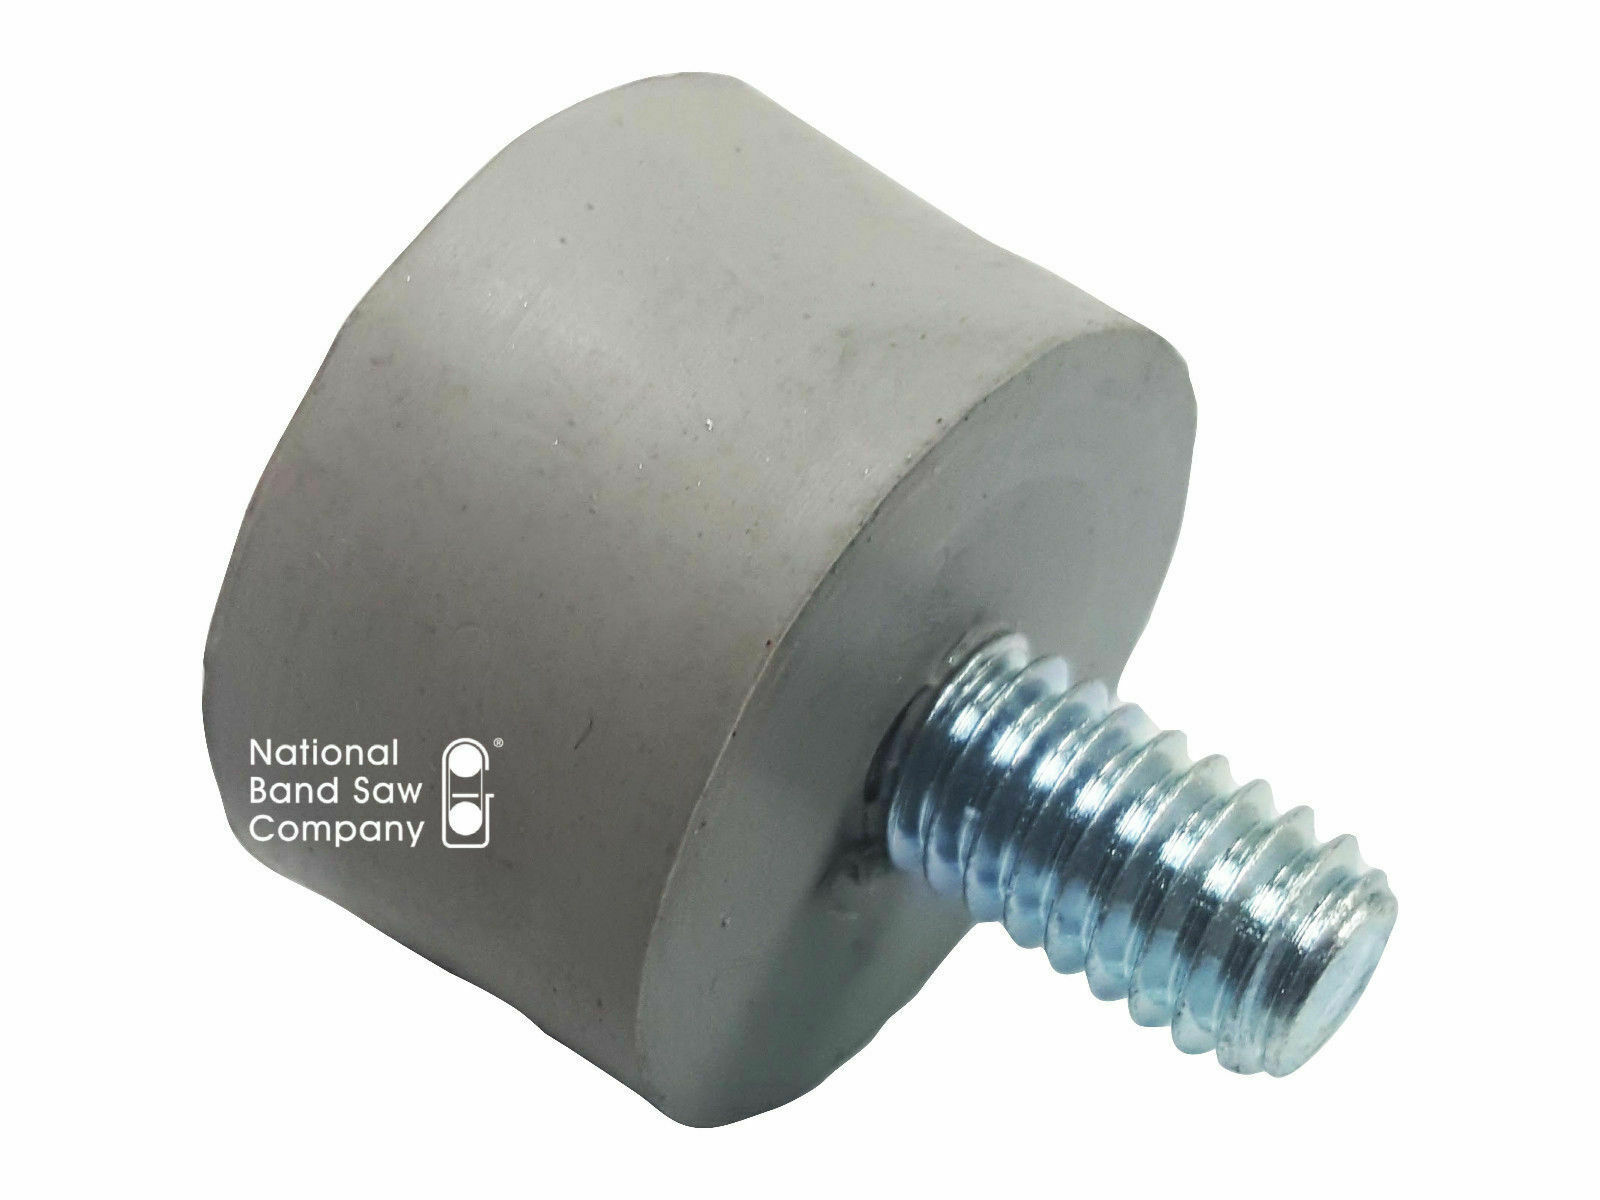 Hobart Meat Slicer Foot//Feet NON SKID GRAY RUBBER WITH 5//16-18 MOUNTING SCREW